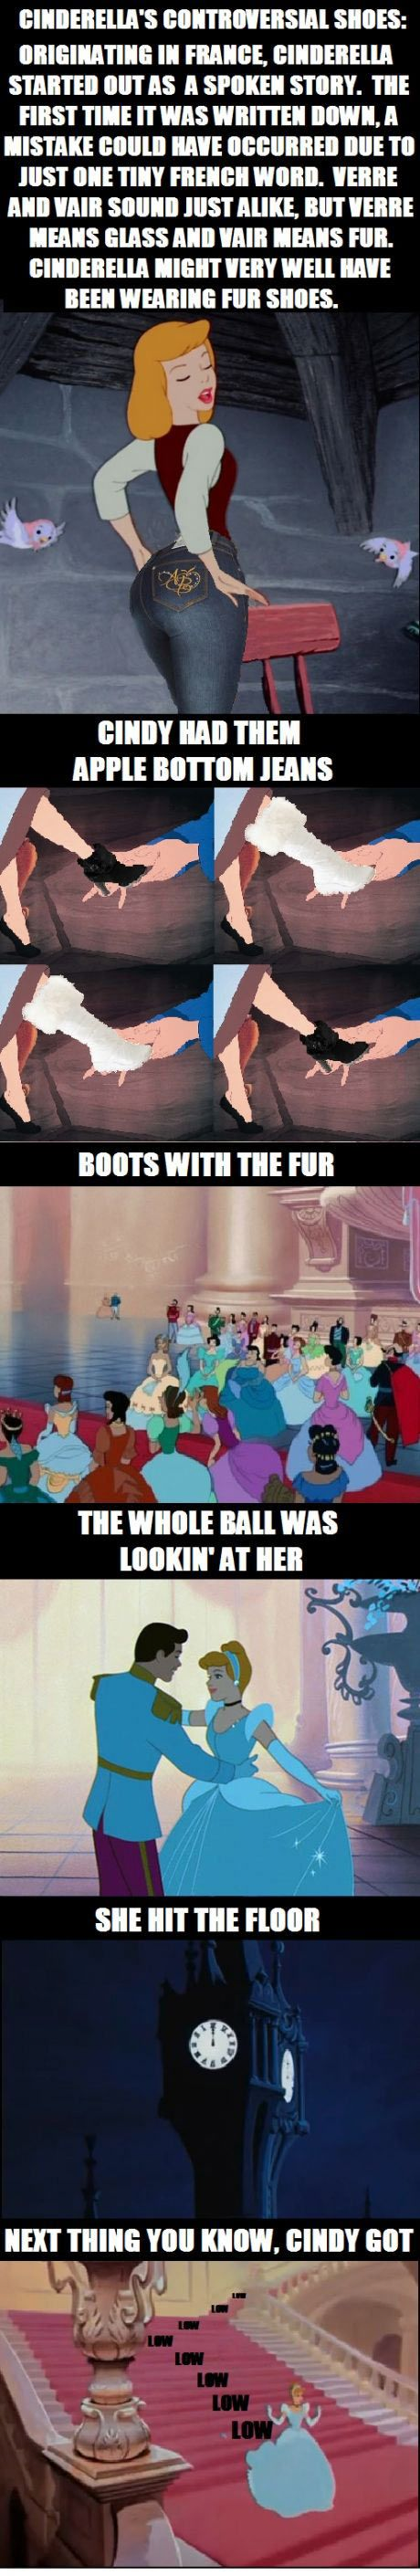 Cinderella's controversial shoes.